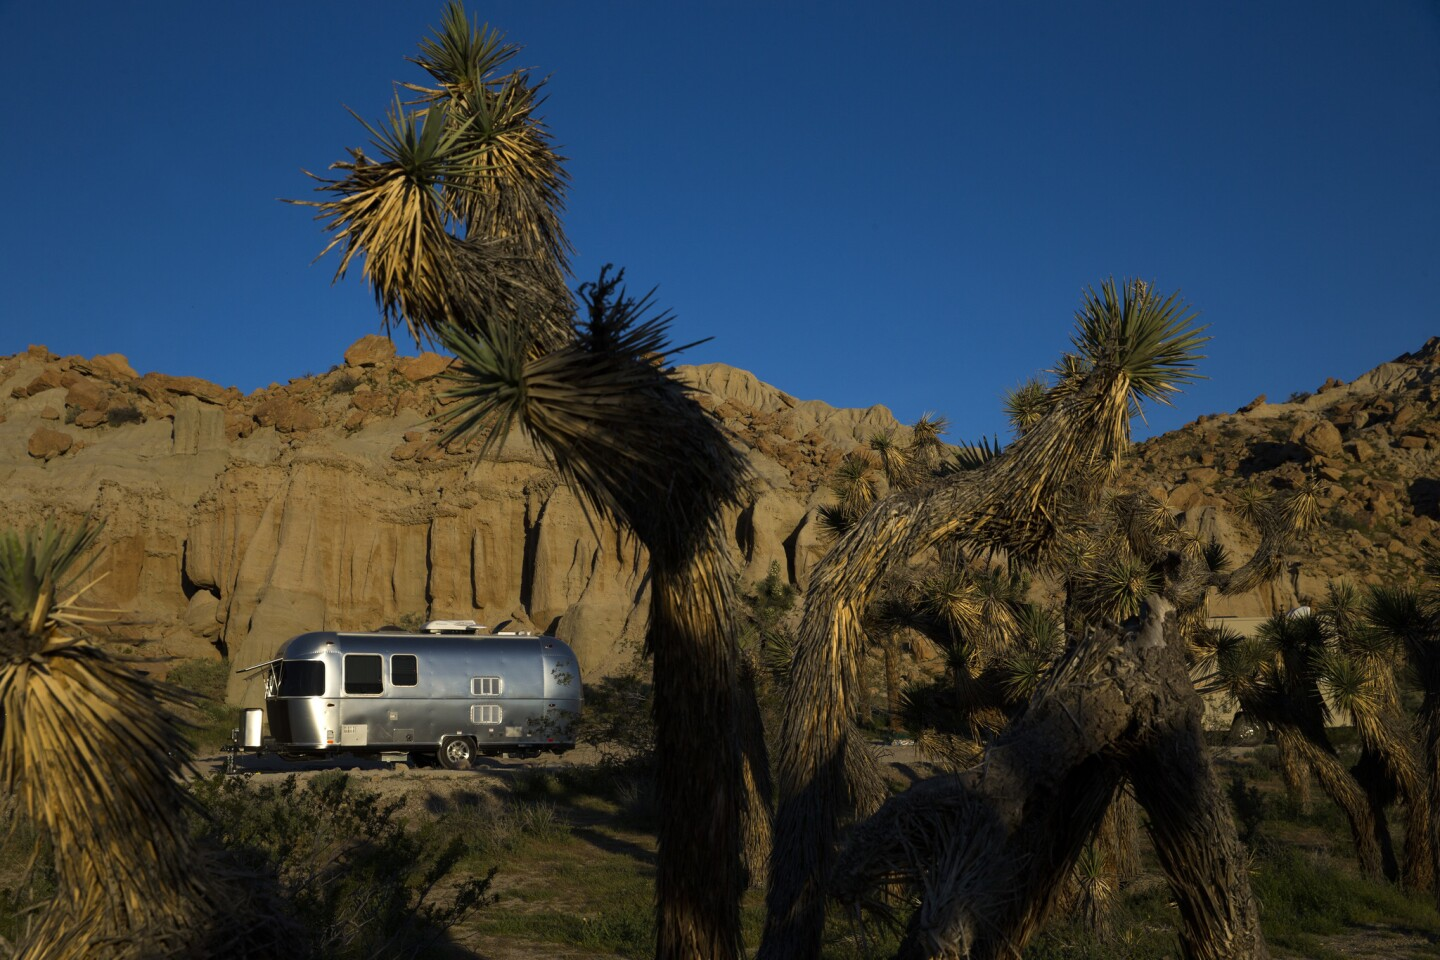 Airstream camping in the Mojave Desert